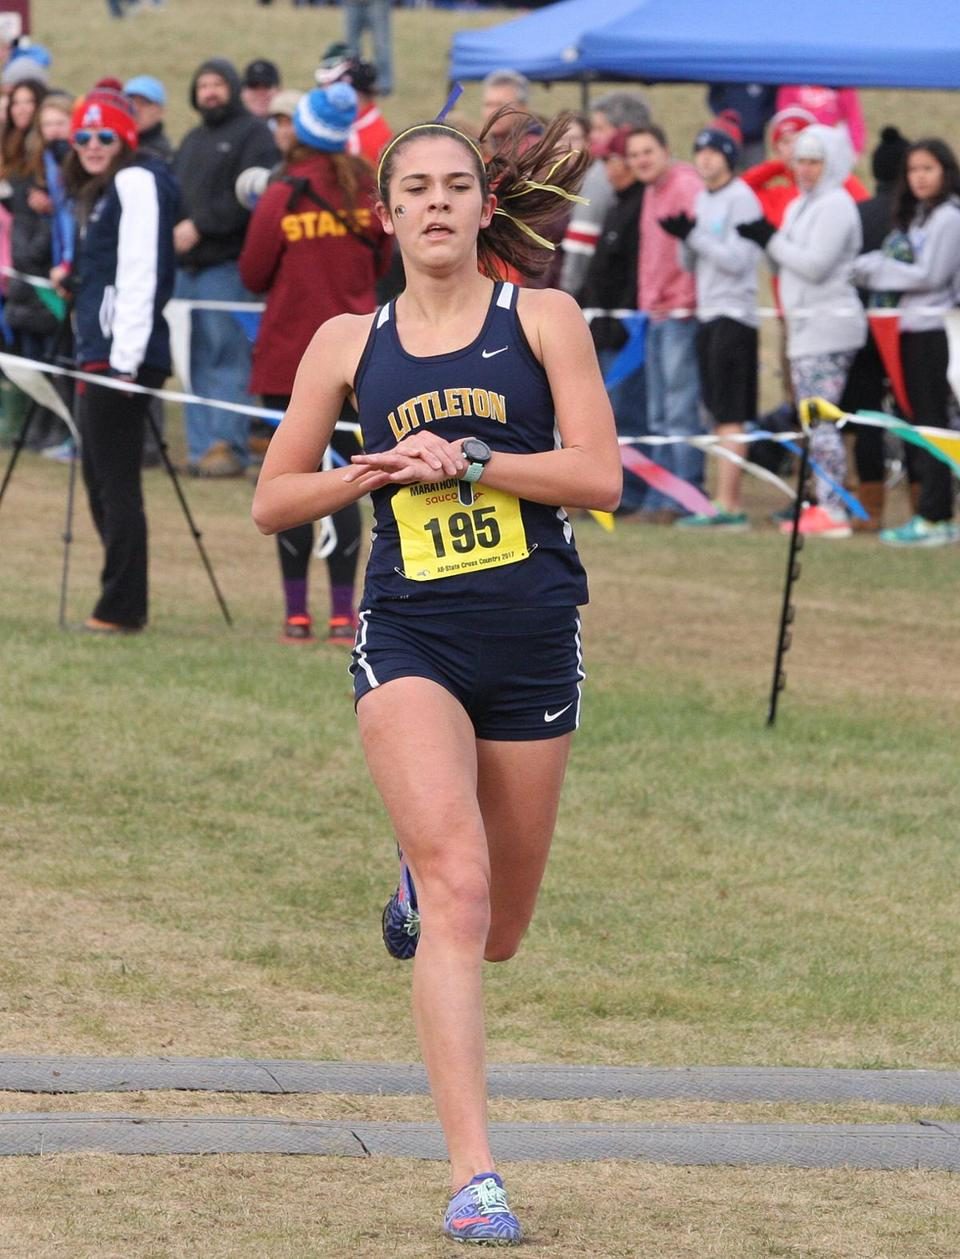 Littleton junior Sarah Roffman was right on time in the Division 2 race.